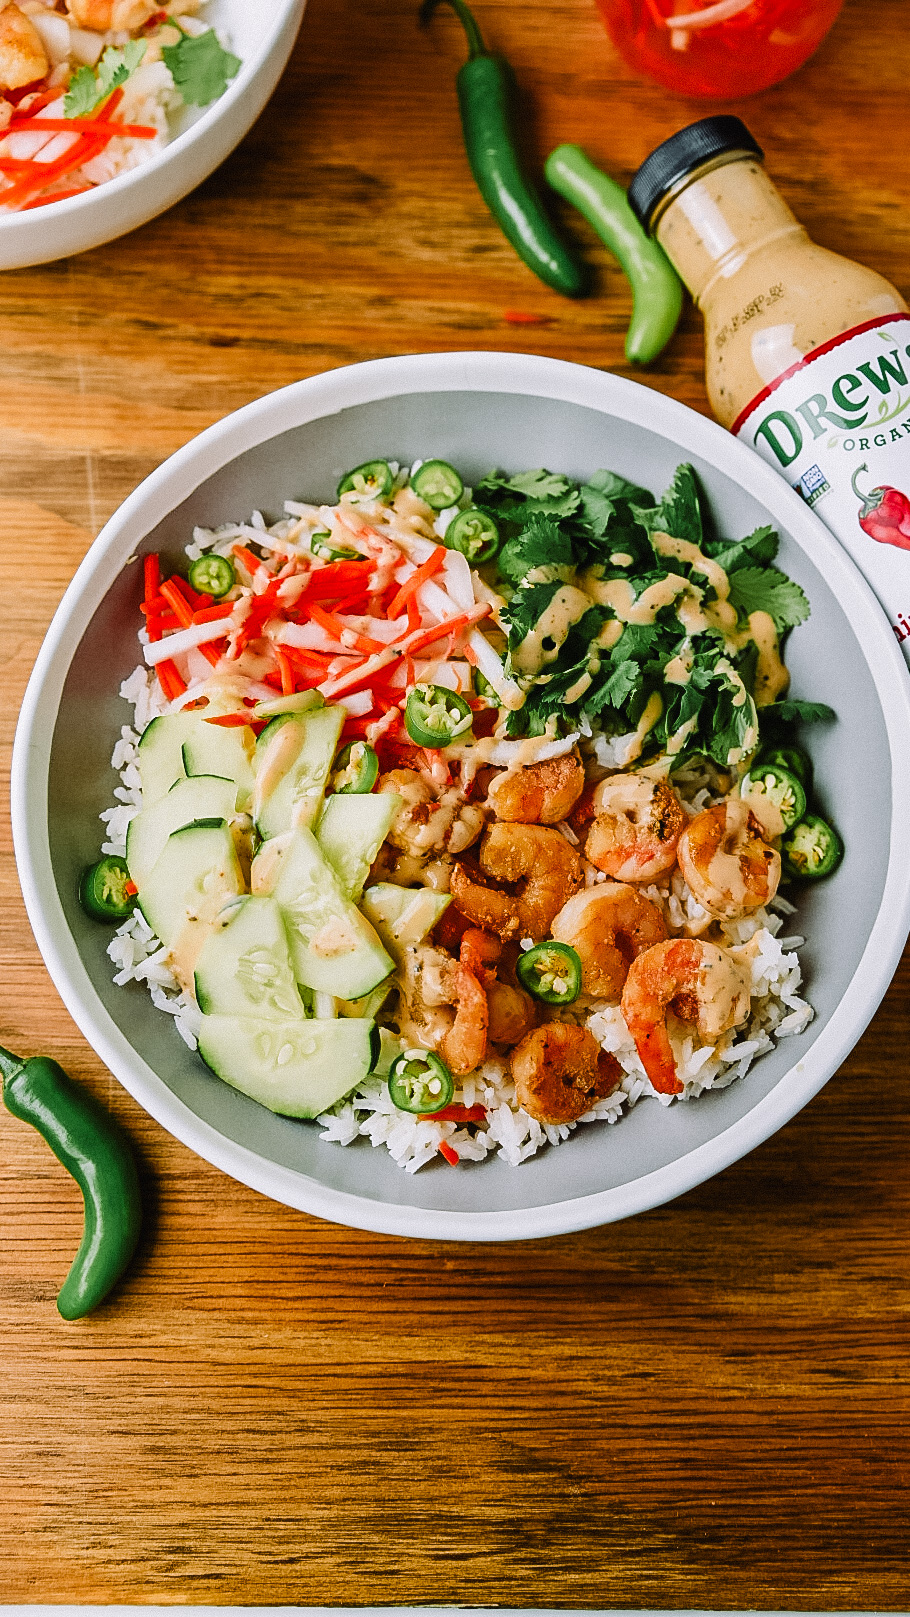 Shrimp Bahn Mi Bowl made with Drew's Organics Chipotle Ranch Dressing